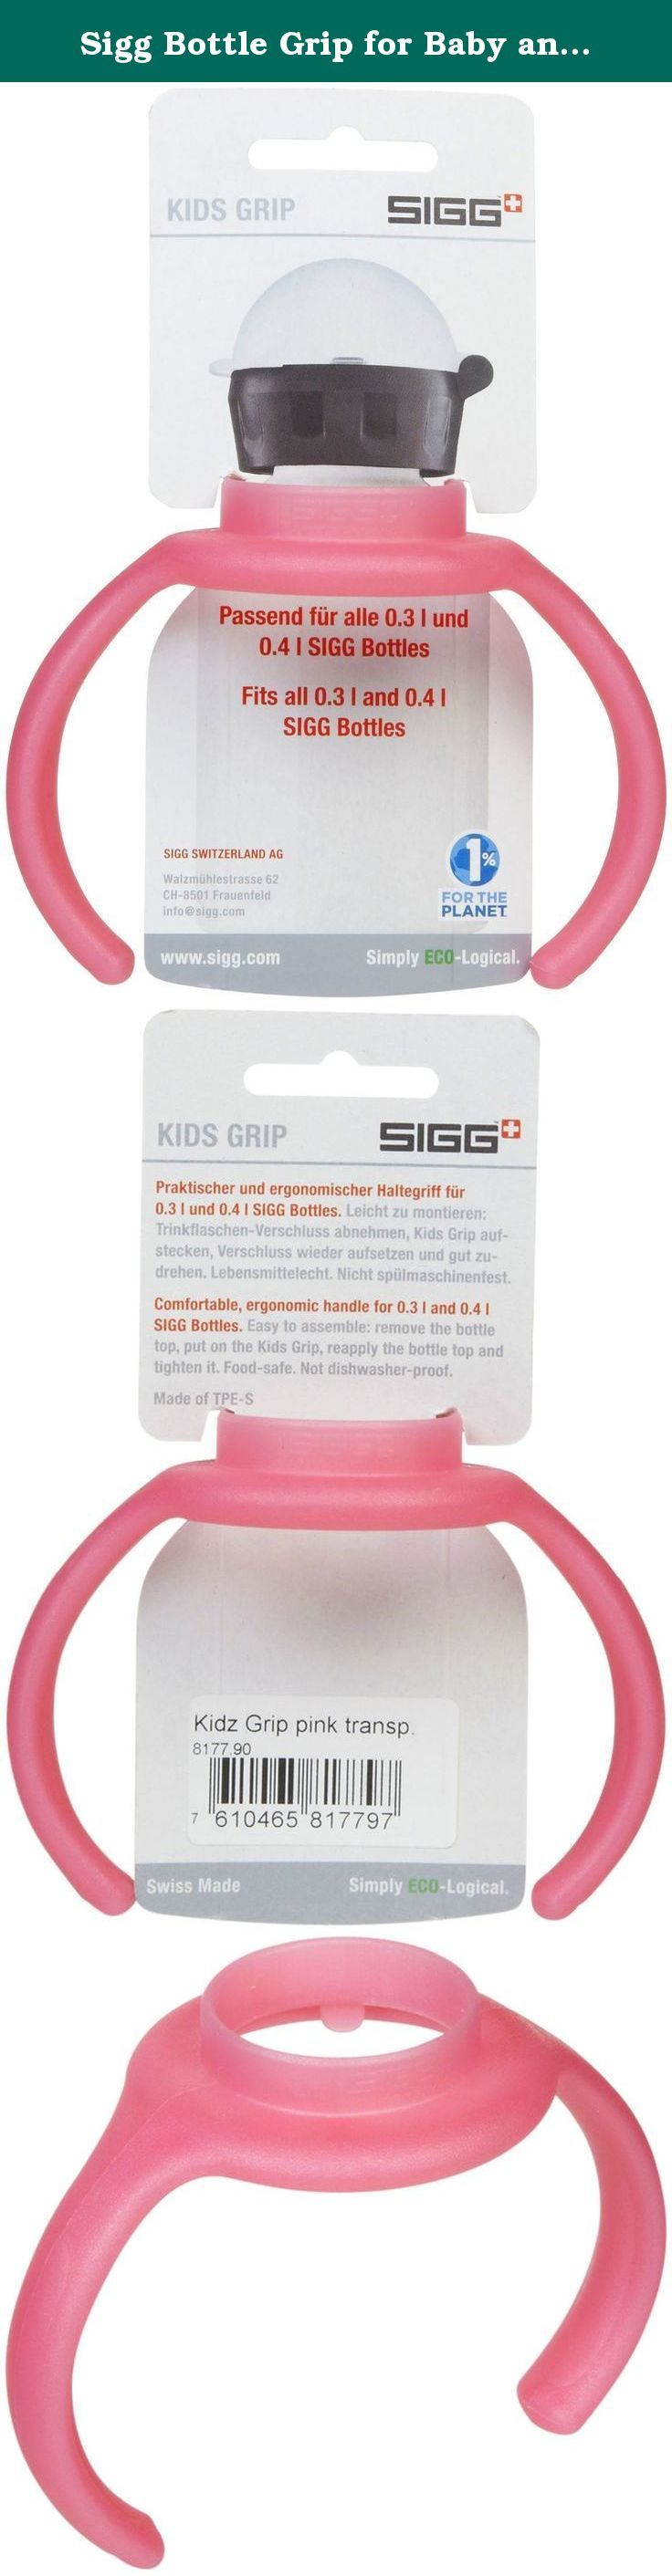 Sigg Bottle Grip for Baby and Kids Water Bottles (0.3/0.4-Liters, Kids Grip Pink). Kids Bottle Grip - Pink The kids' grips help your toddler drink from the bottle so your kid can carry and drink from his/her own SIGG bottle independently. .